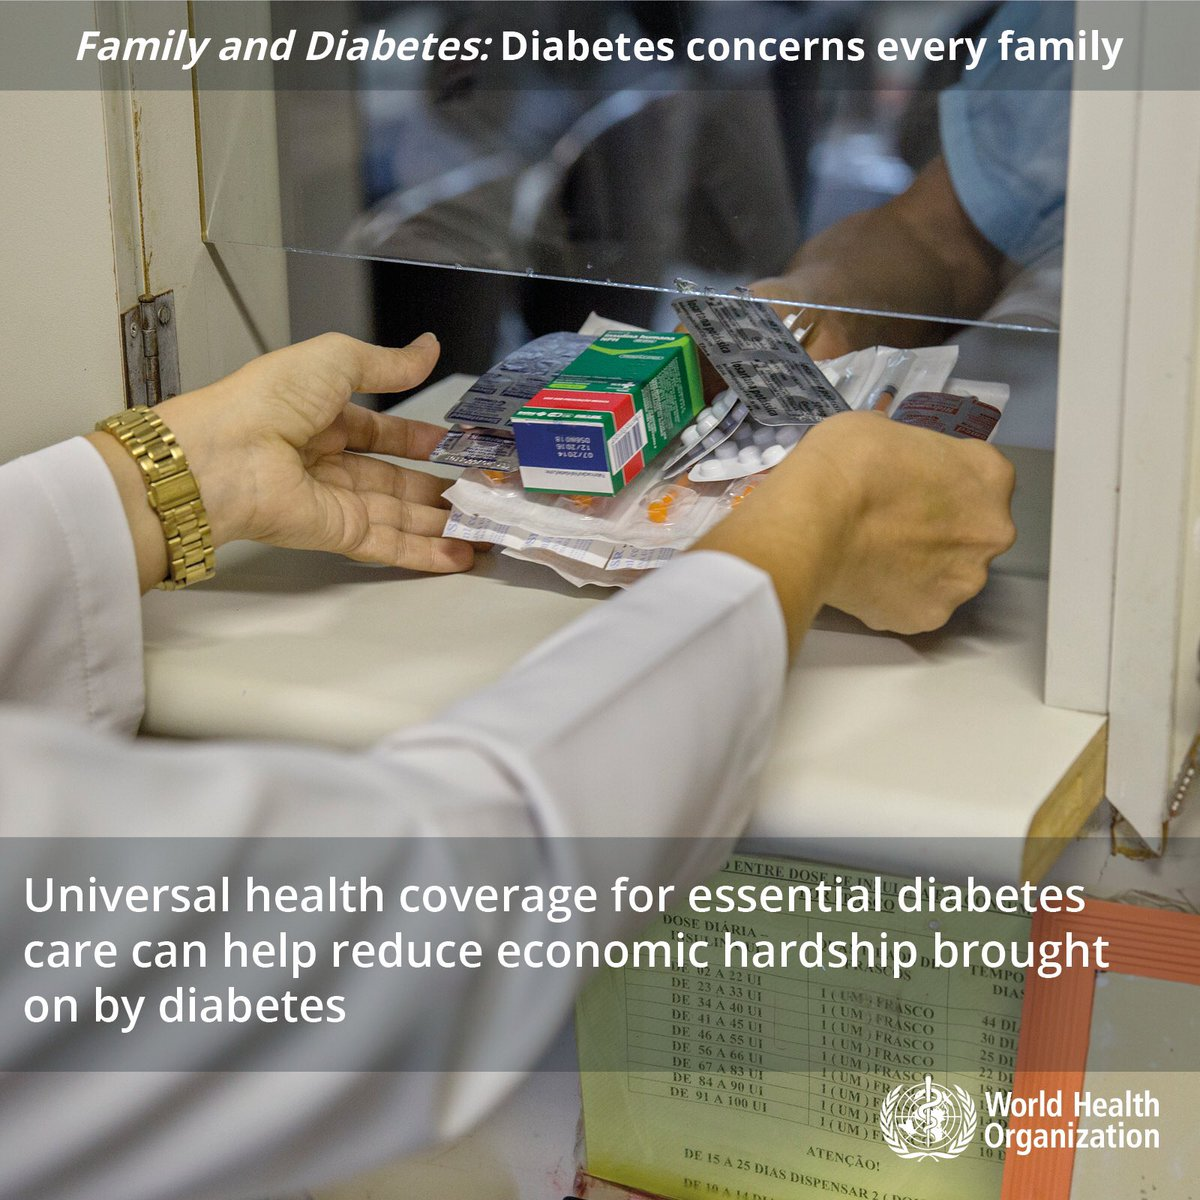 test Twitter Media - Universal health coverage for essential #diabetes care can help reduce economic hardship brought by diabetes #HealthForAll https://t.co/OhWTD2xKlB https://t.co/J3xugNexTu